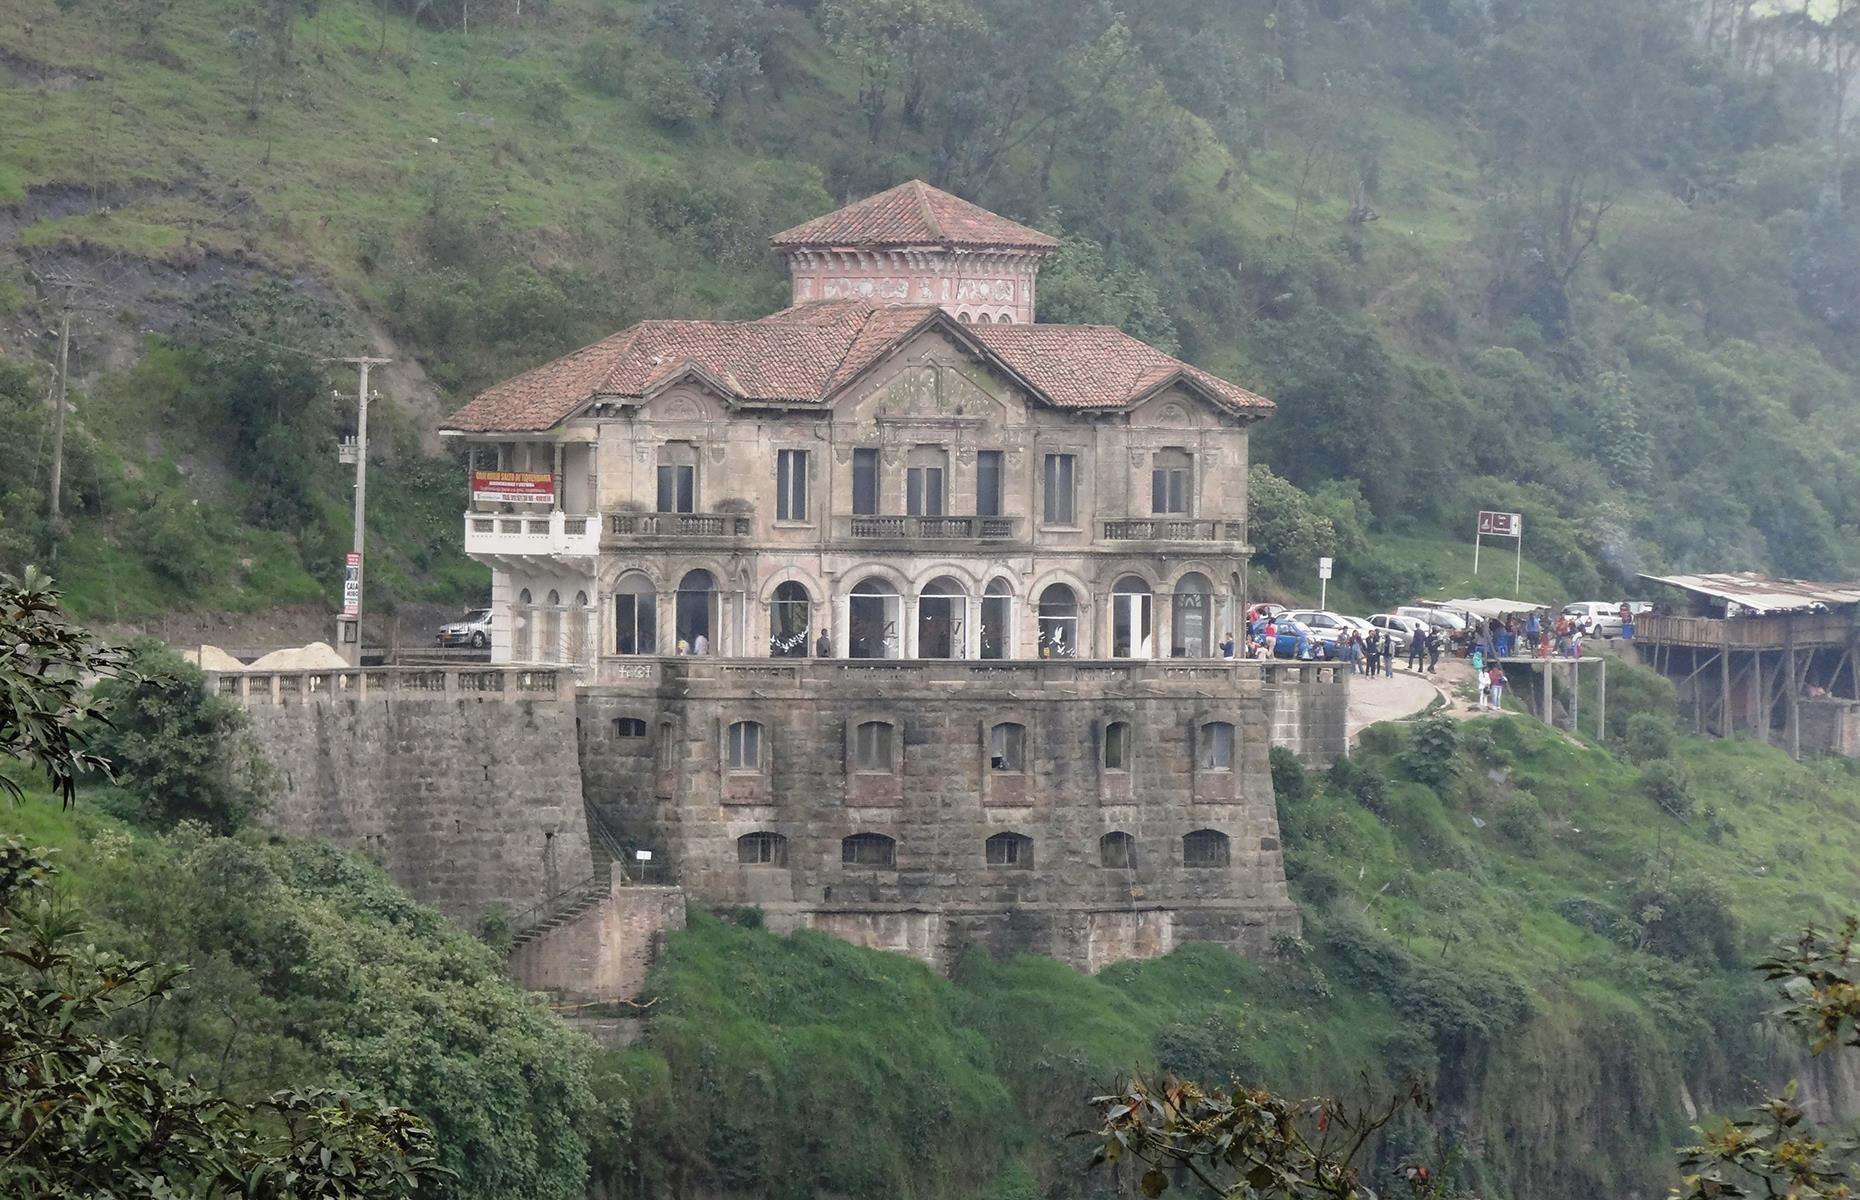 Slide 2 of 70: Overlooking the stunning Tequendama Falls, this hotel opened in 1929. For decades it welcomed thousands of wealthy tourists, who came to see the spectacular waterfall.